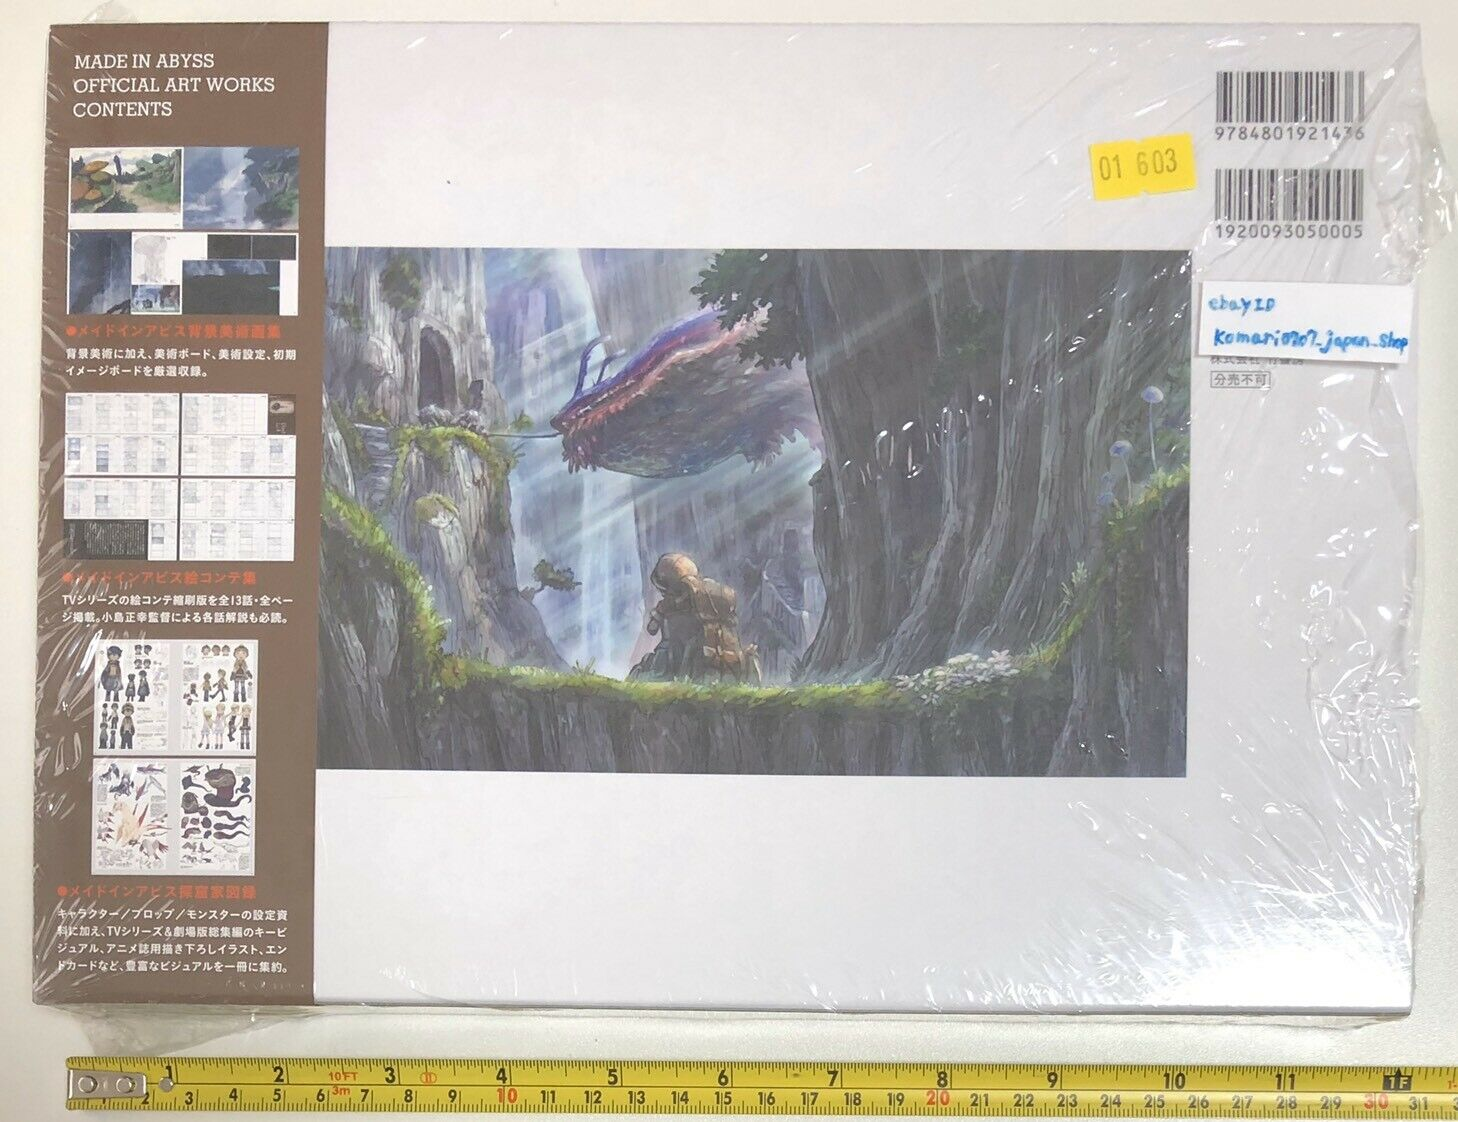 MADE IN ABYSS Cave exploration records TV anime official art works 3 book folder